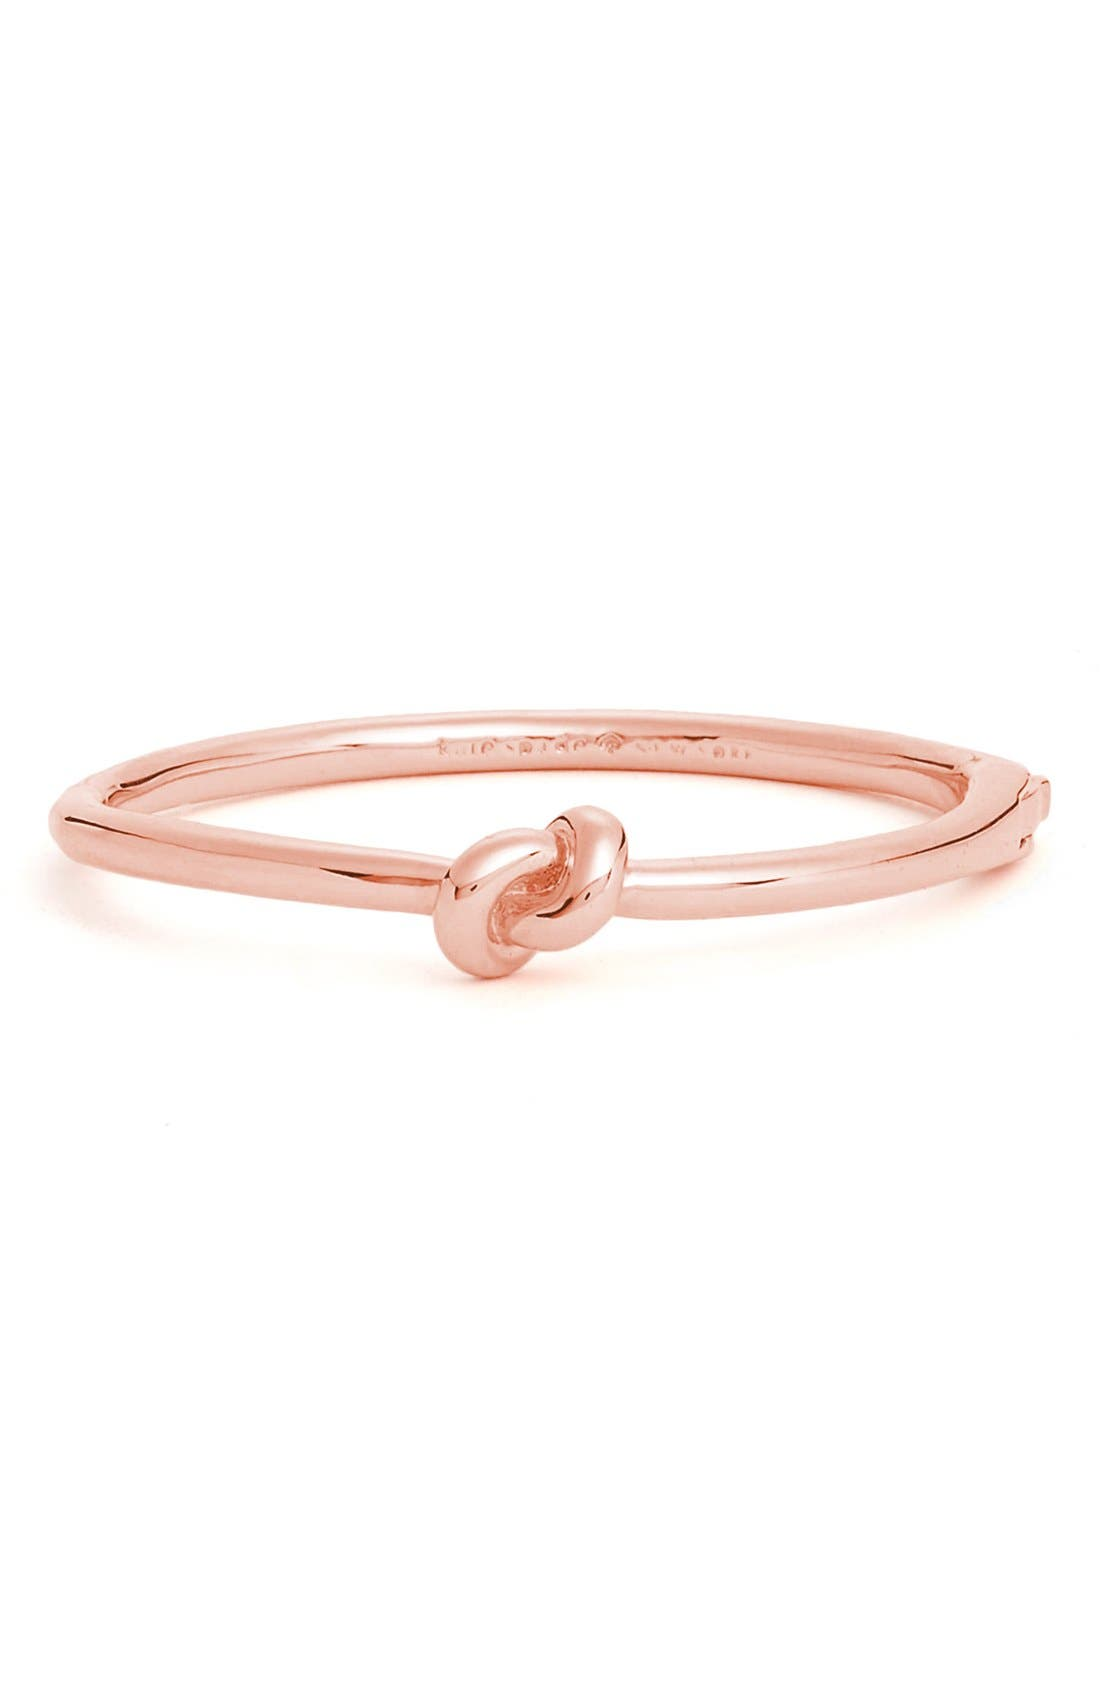 Main Image - kate spade new york 'sailors knot' bangle